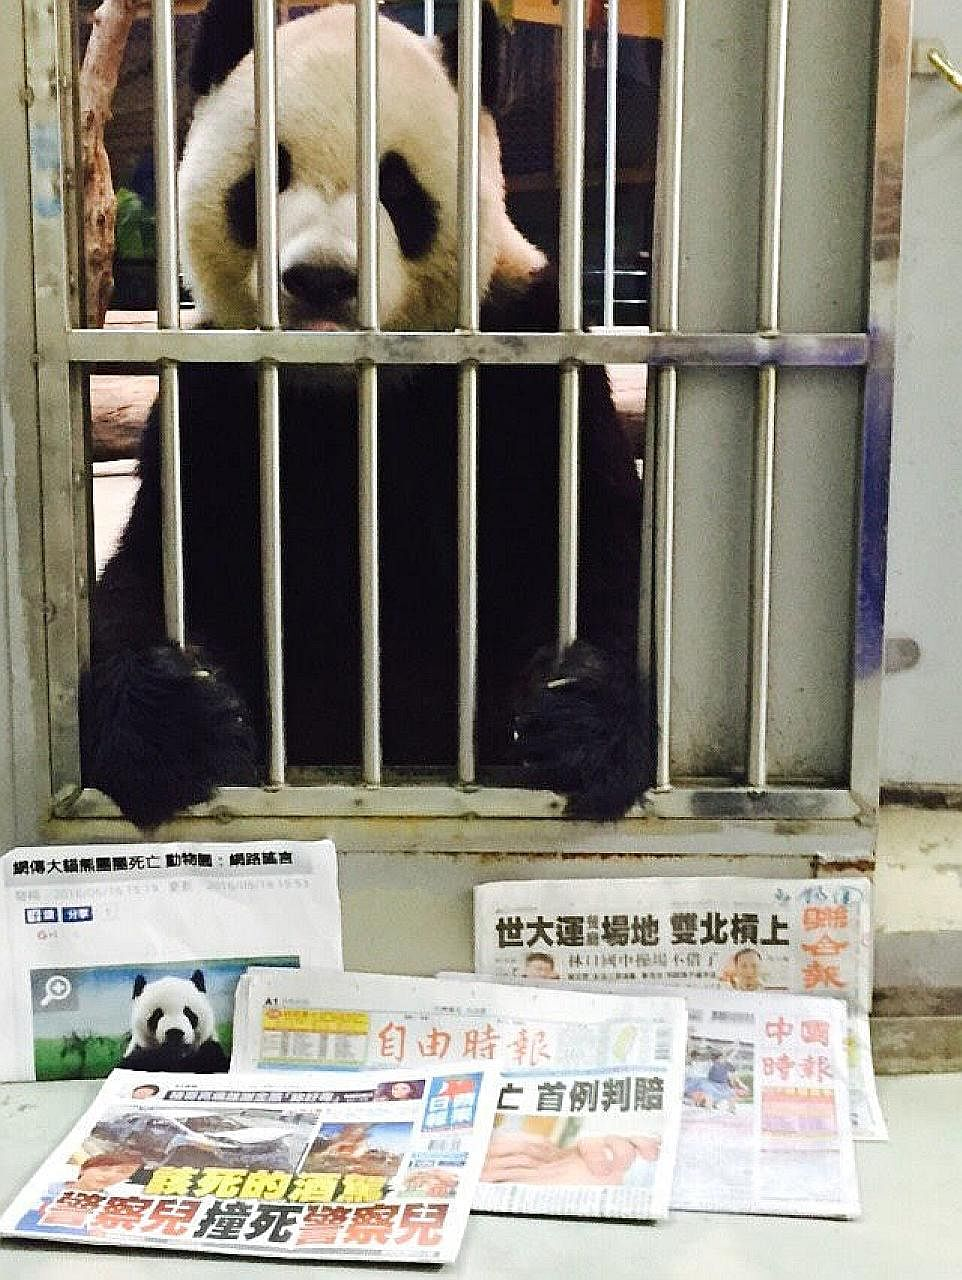 Tuan Tuan, Taipei Zoo's male panda, was mistaken to have died.